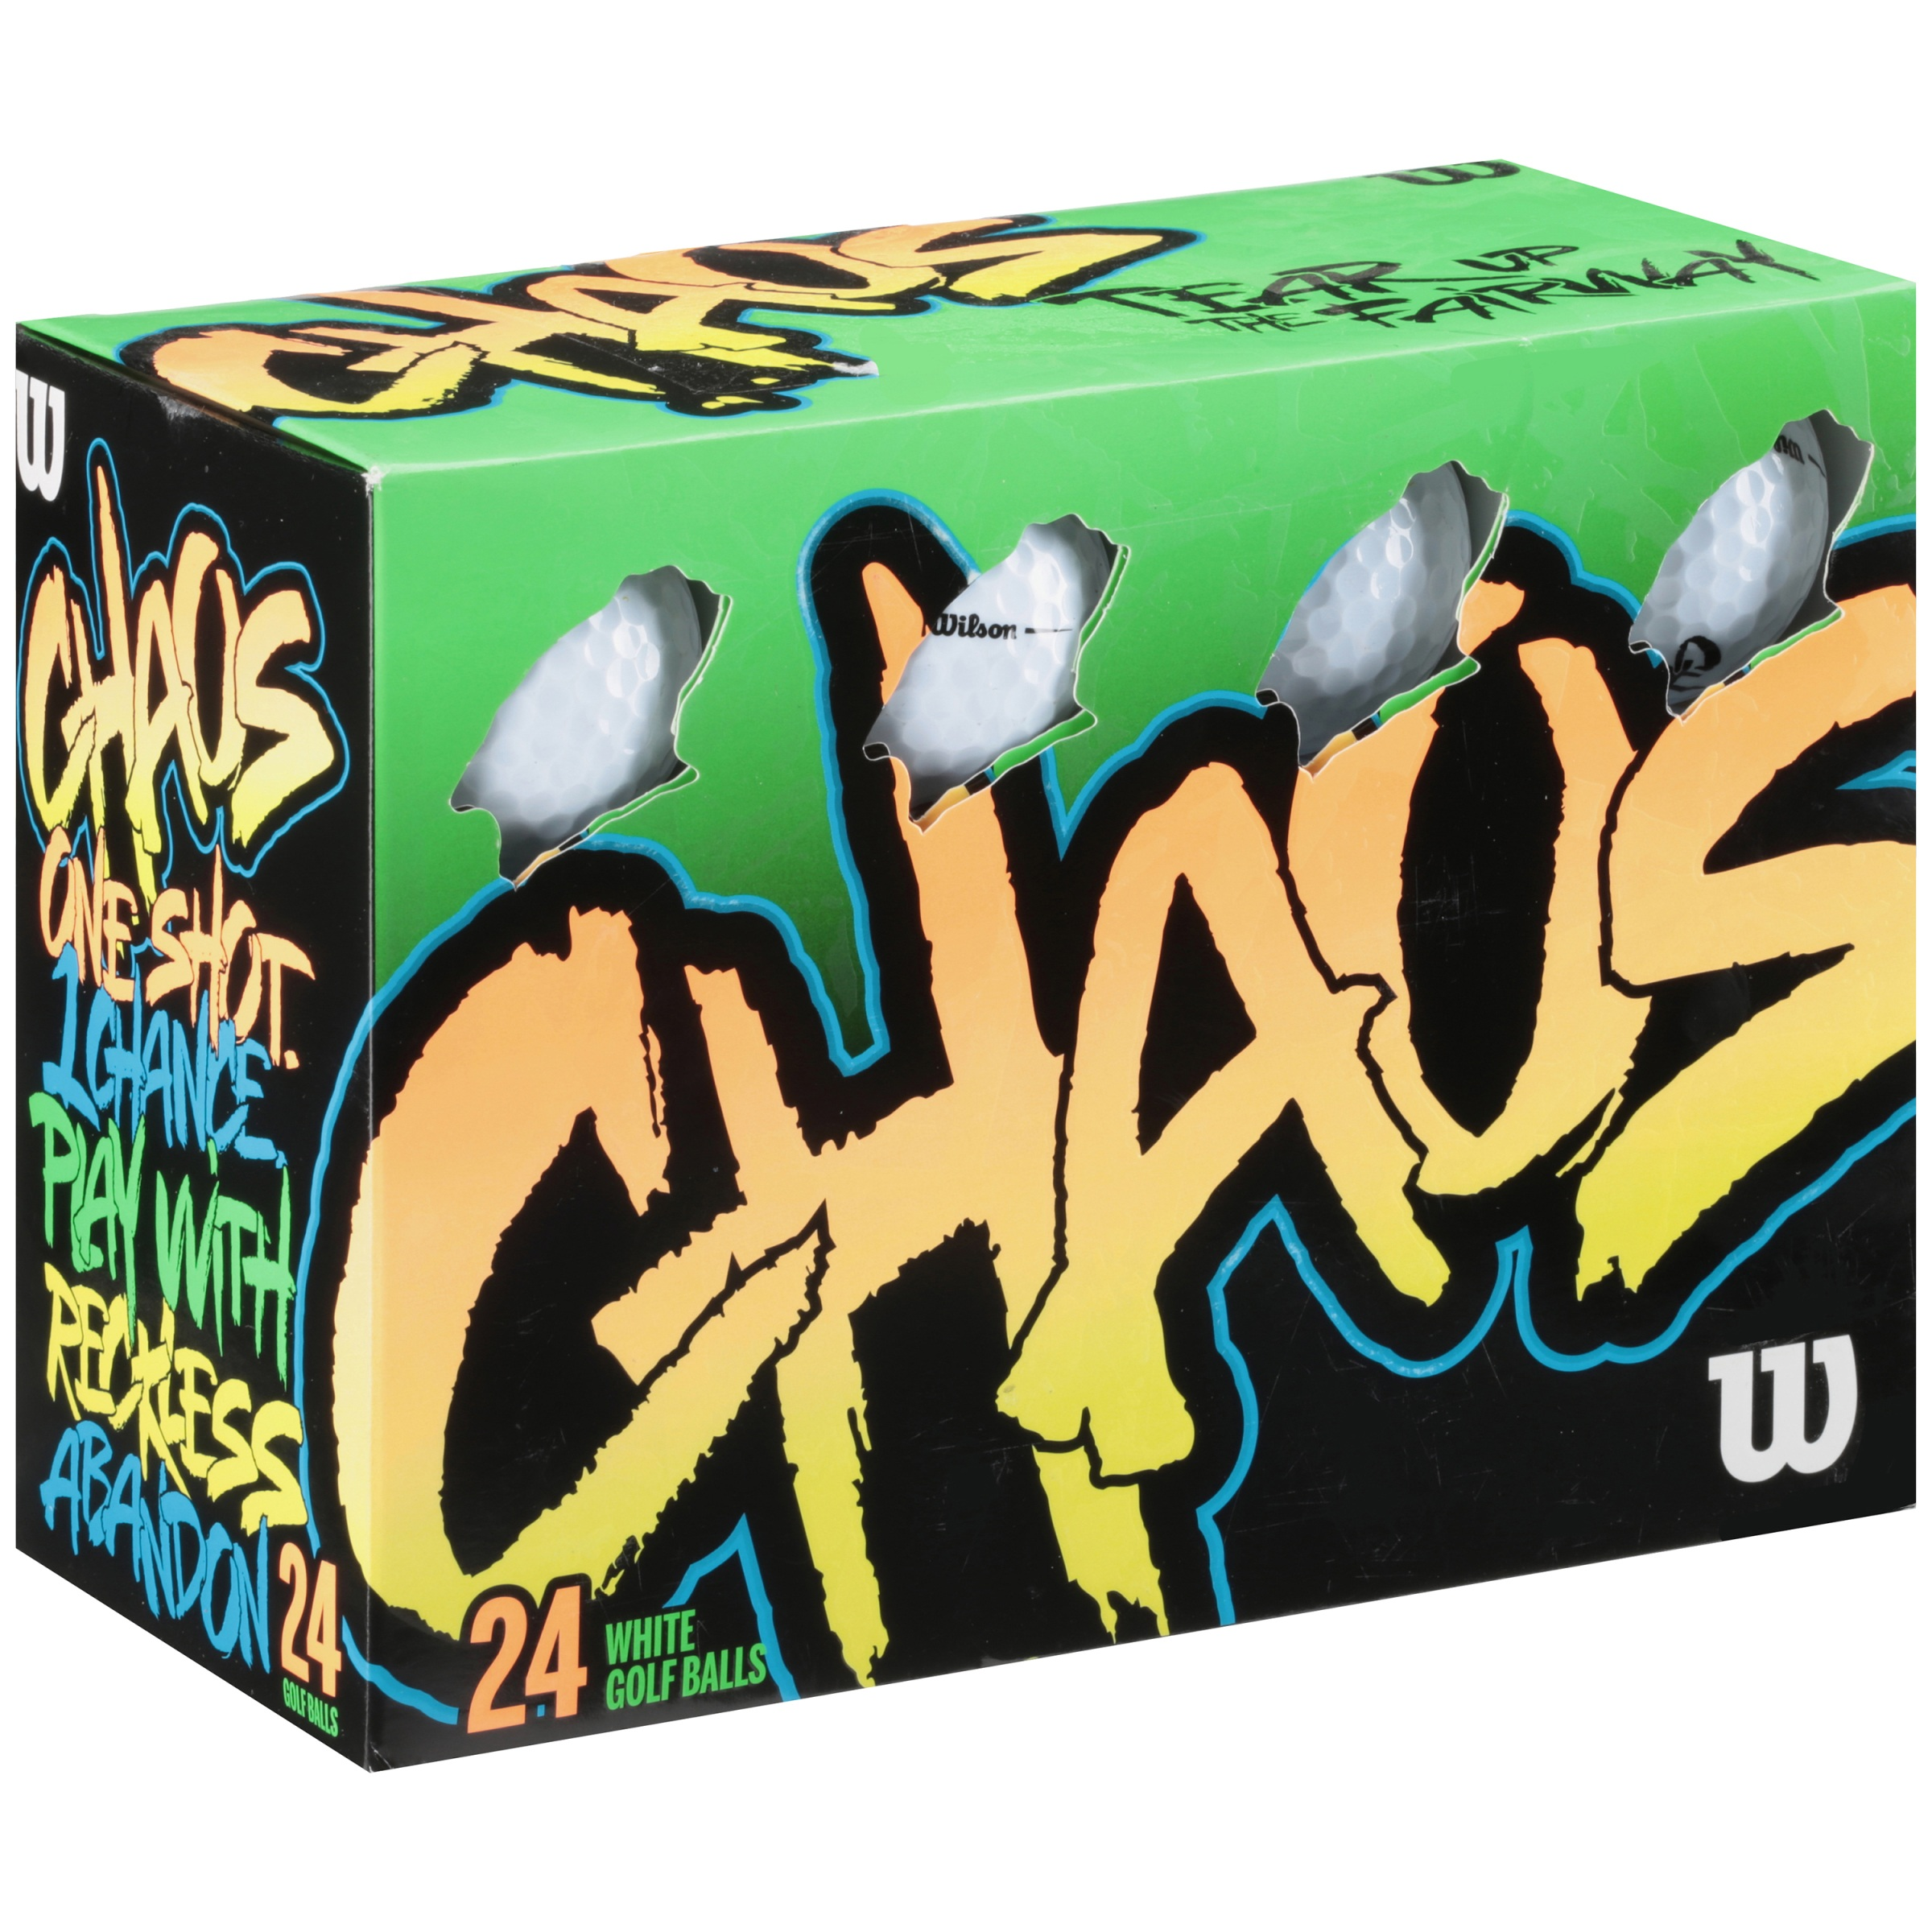 Wilson Chaos Golf Balls, 24 Ball Pack Multi-Color by Wilson Sporting Goods